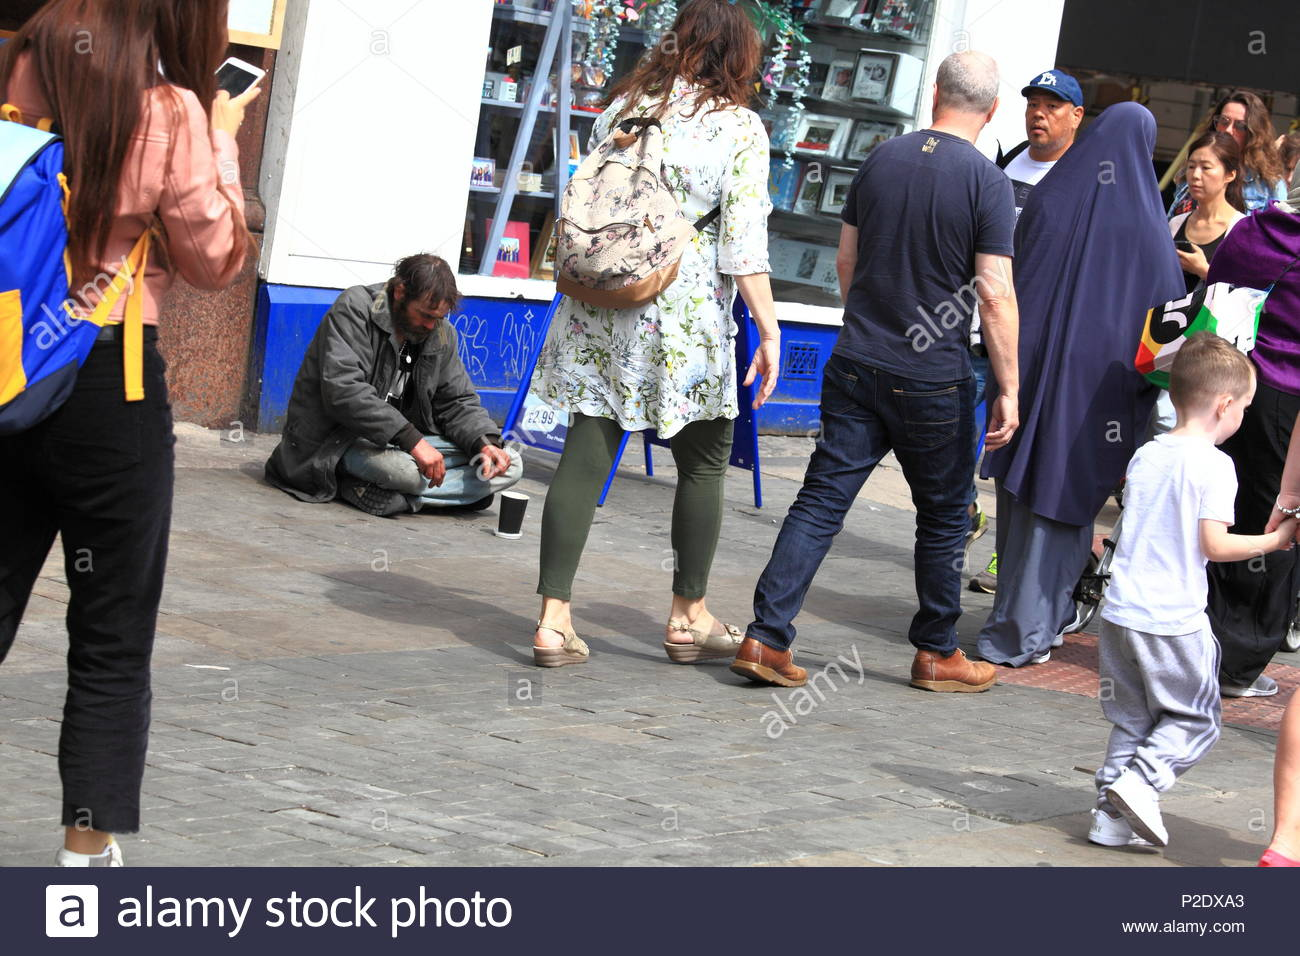 A beggar sits on the floor with cardboard cup and change as passers by look on at Manchester City Centre Uk Summer June 2018 - Stock Image